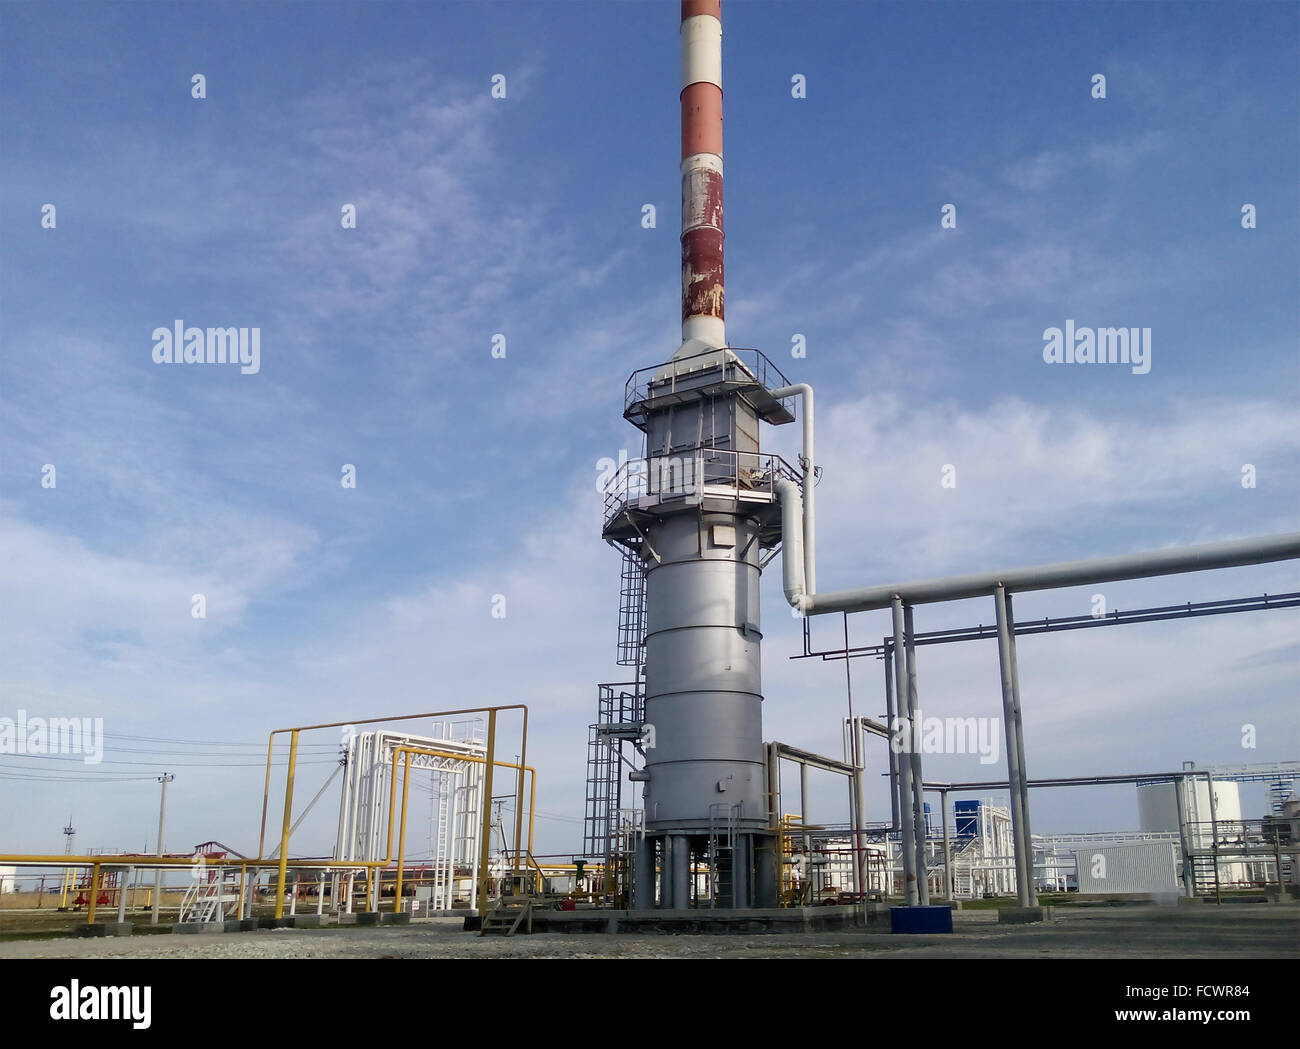 Furnace For Heating Oil At The Refinery The Equipment For